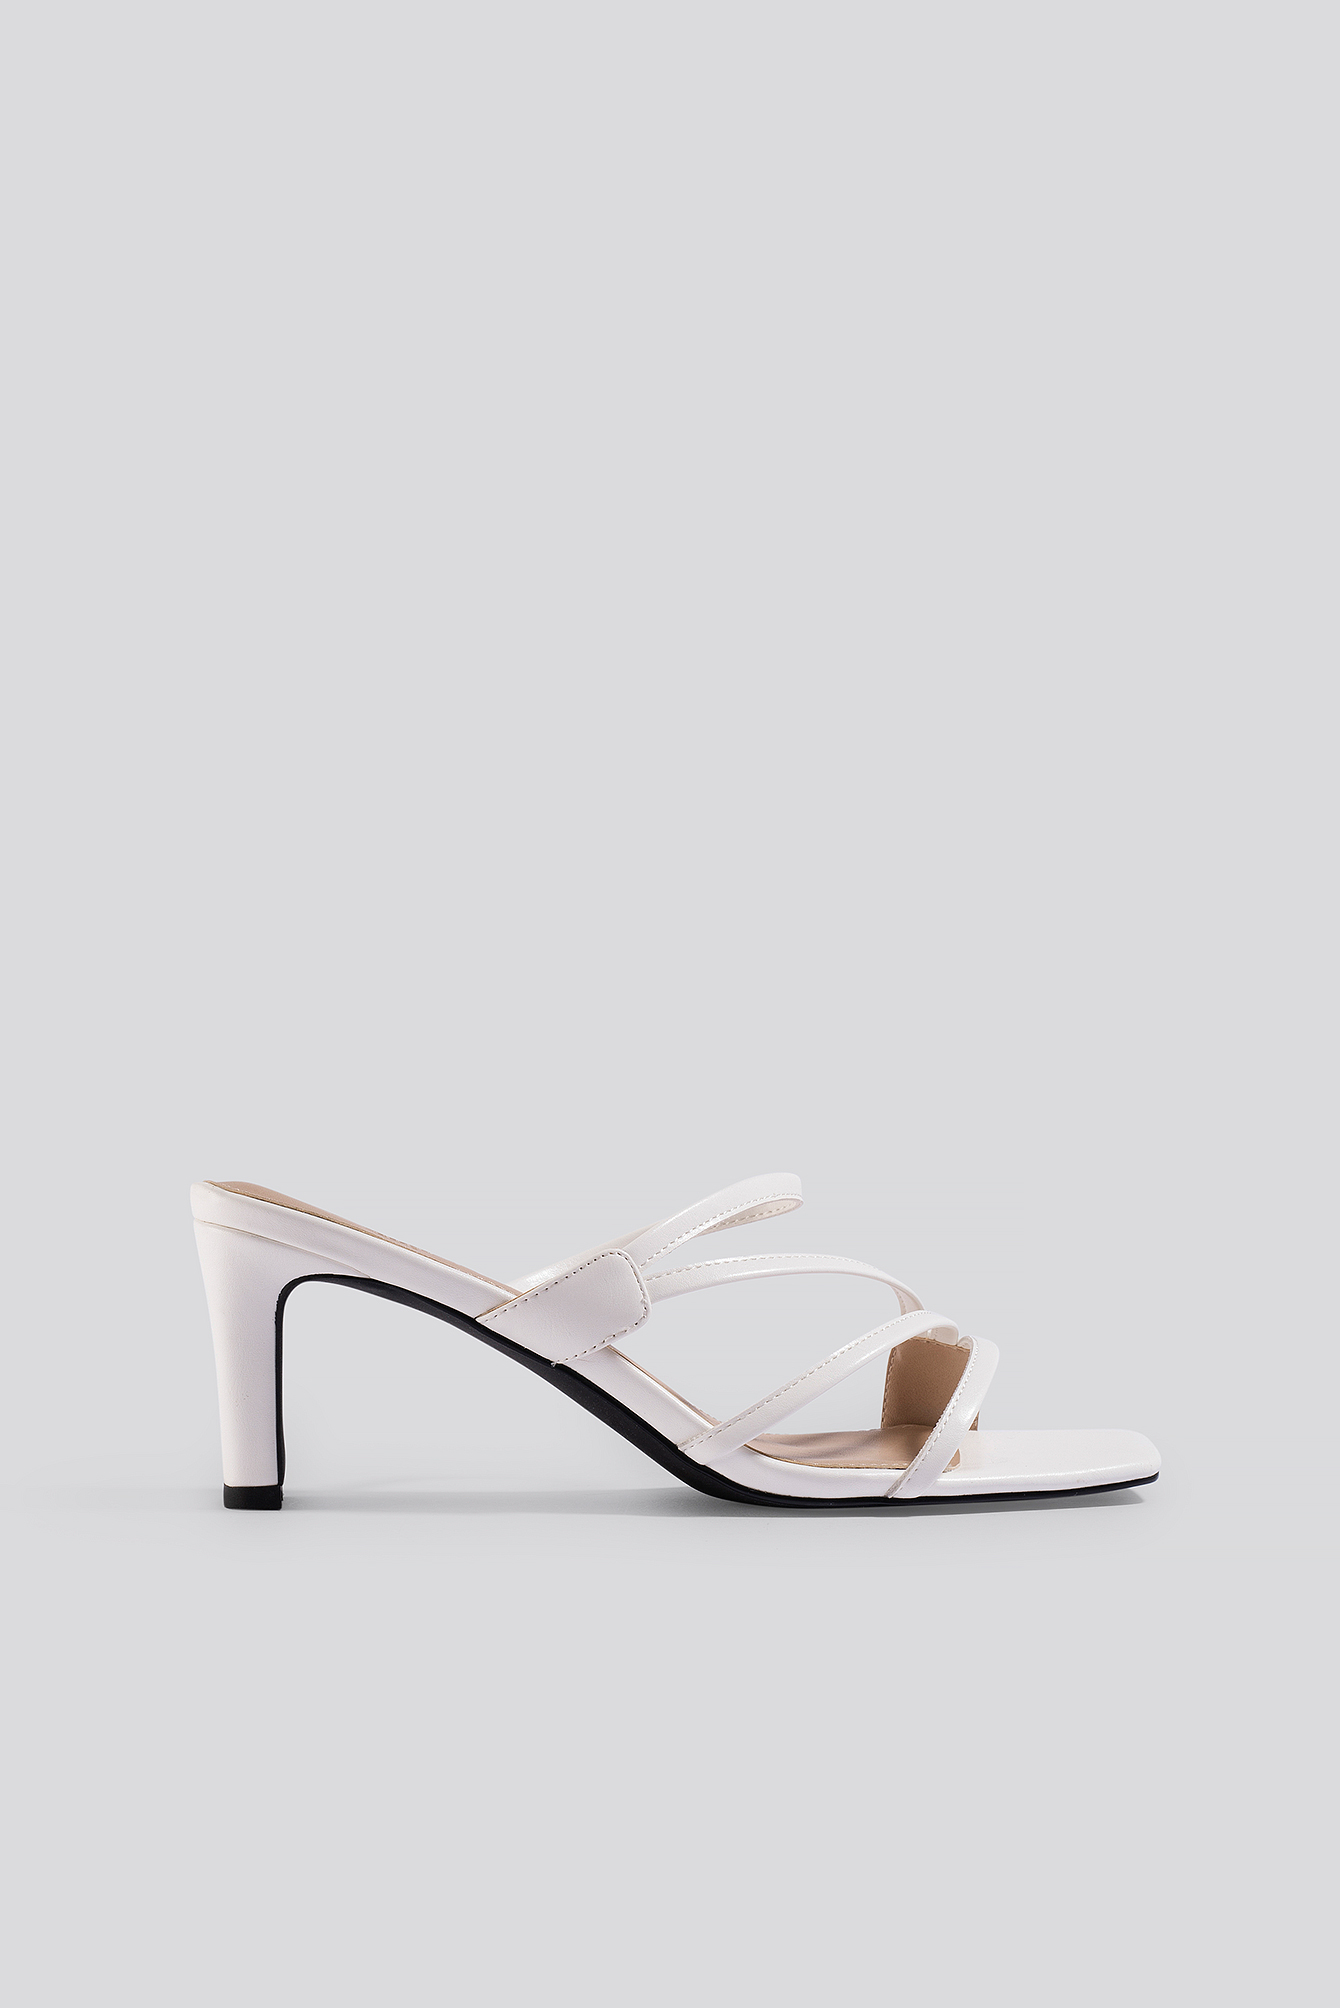 na-kd shoes -  Squared Strappy Sandals - White